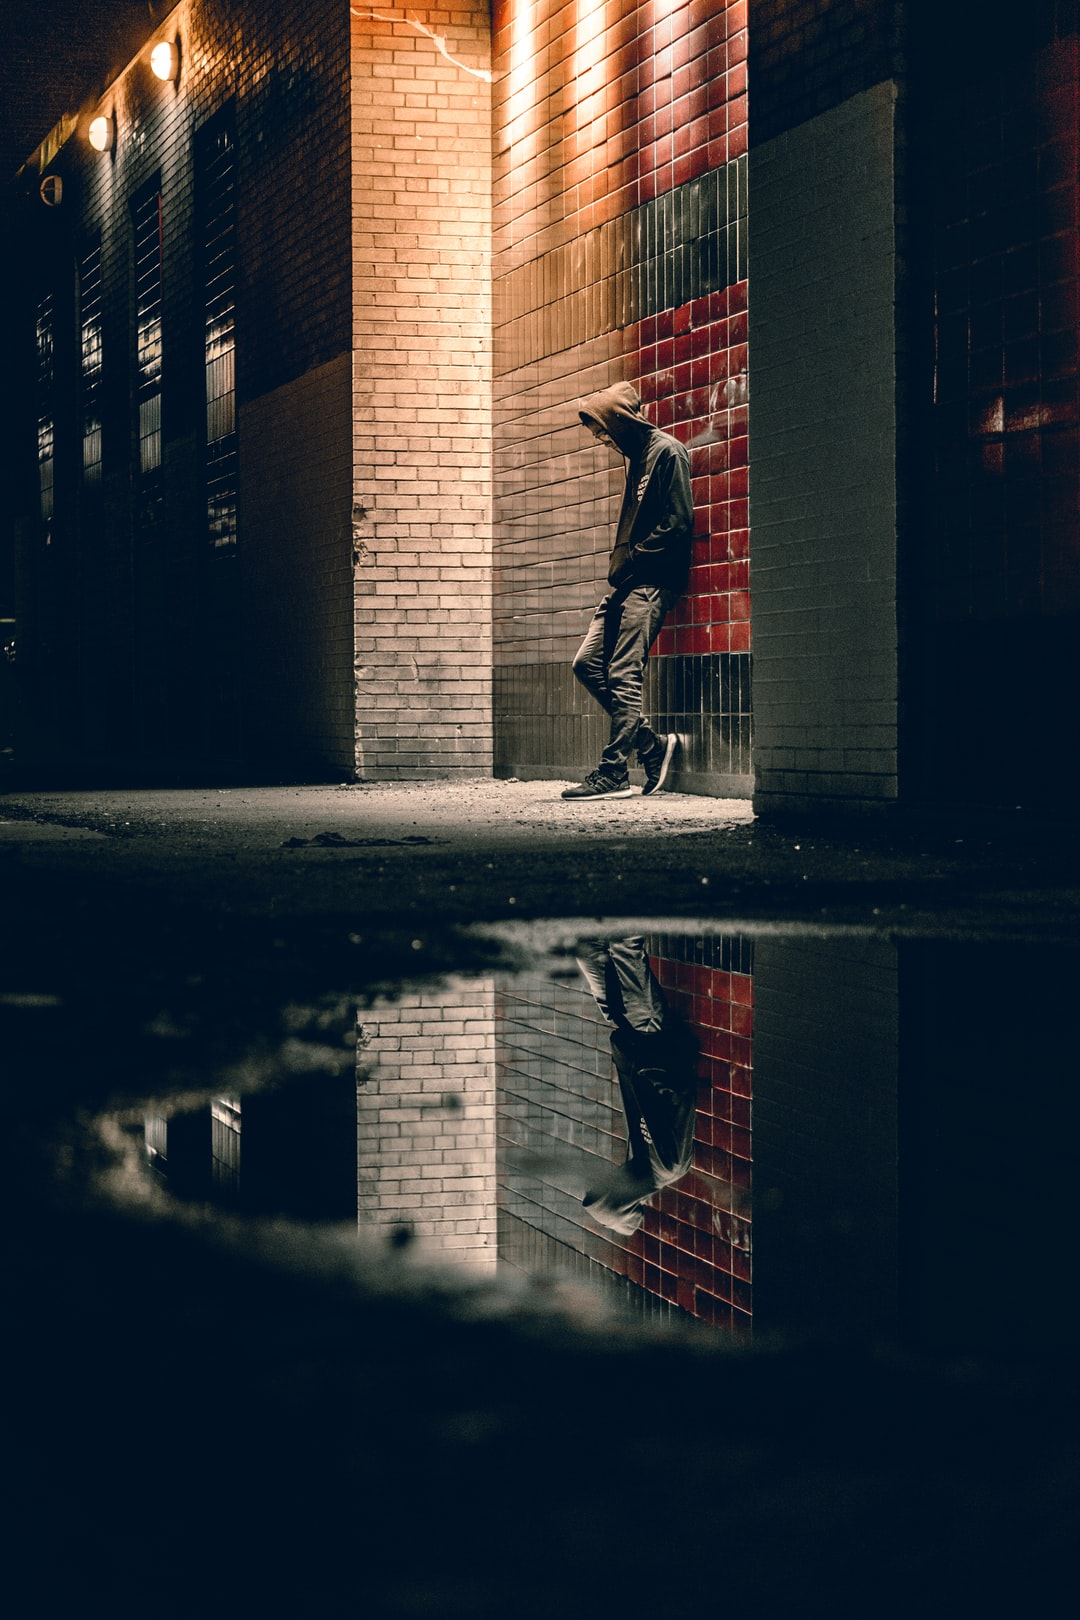 Quiet Reflection photo by Warren Wong (@wflwong) on Unsplash